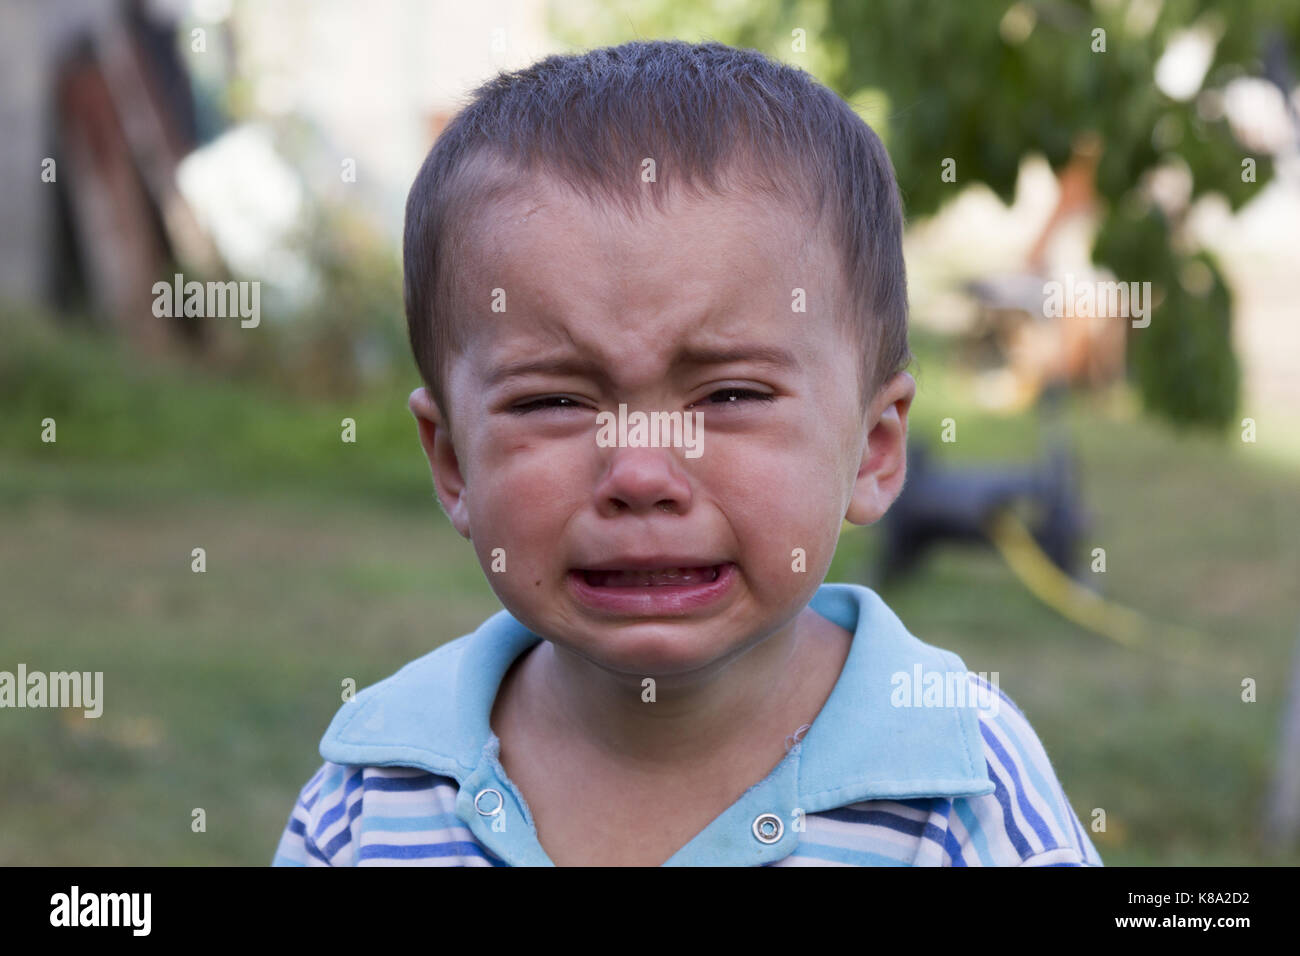 The little boy is crying loudly - Stock Image